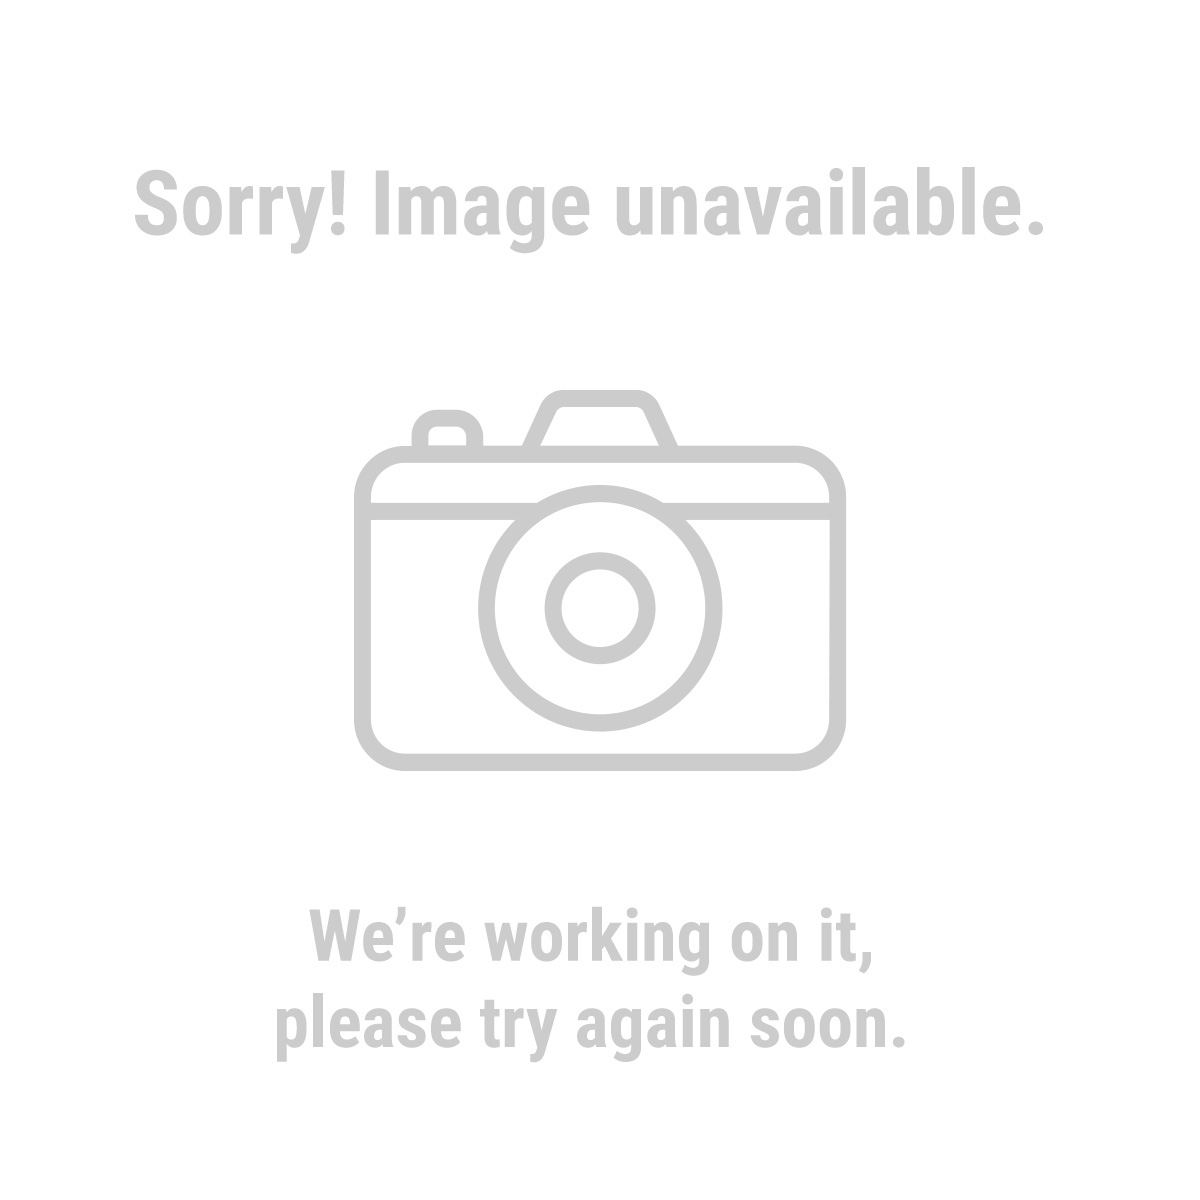 ShelterLogic 68762 10 ft. x 20 ft. Pop-Up Canopy with Green Cover